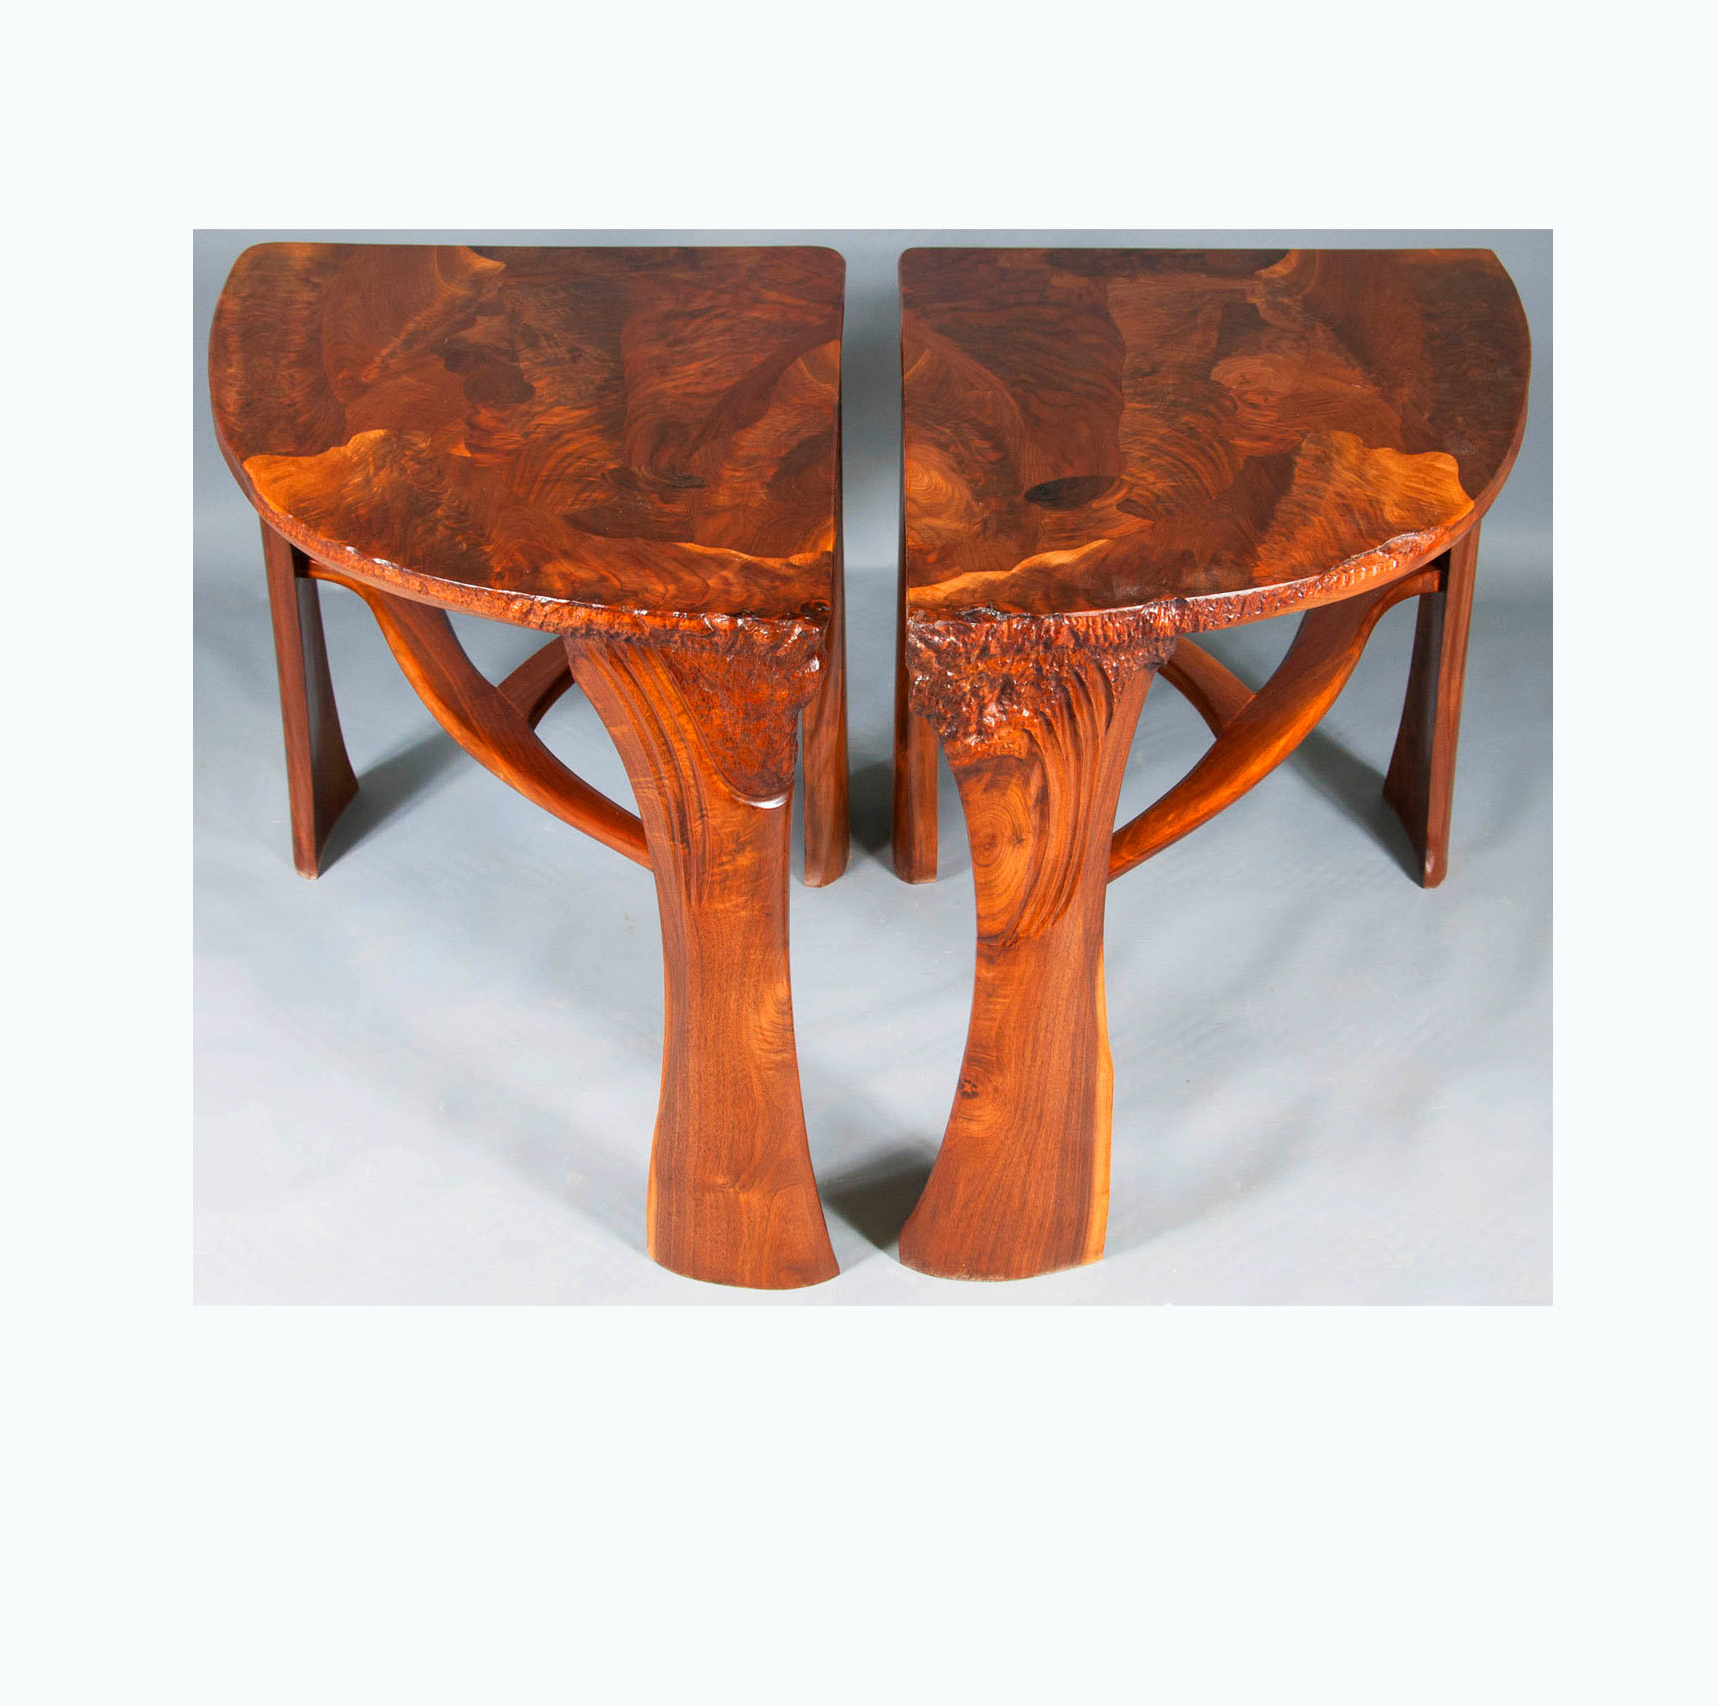 2019 Expressionist Coffee Tables Inside Bruce Schuettinger (View 14 of 20)